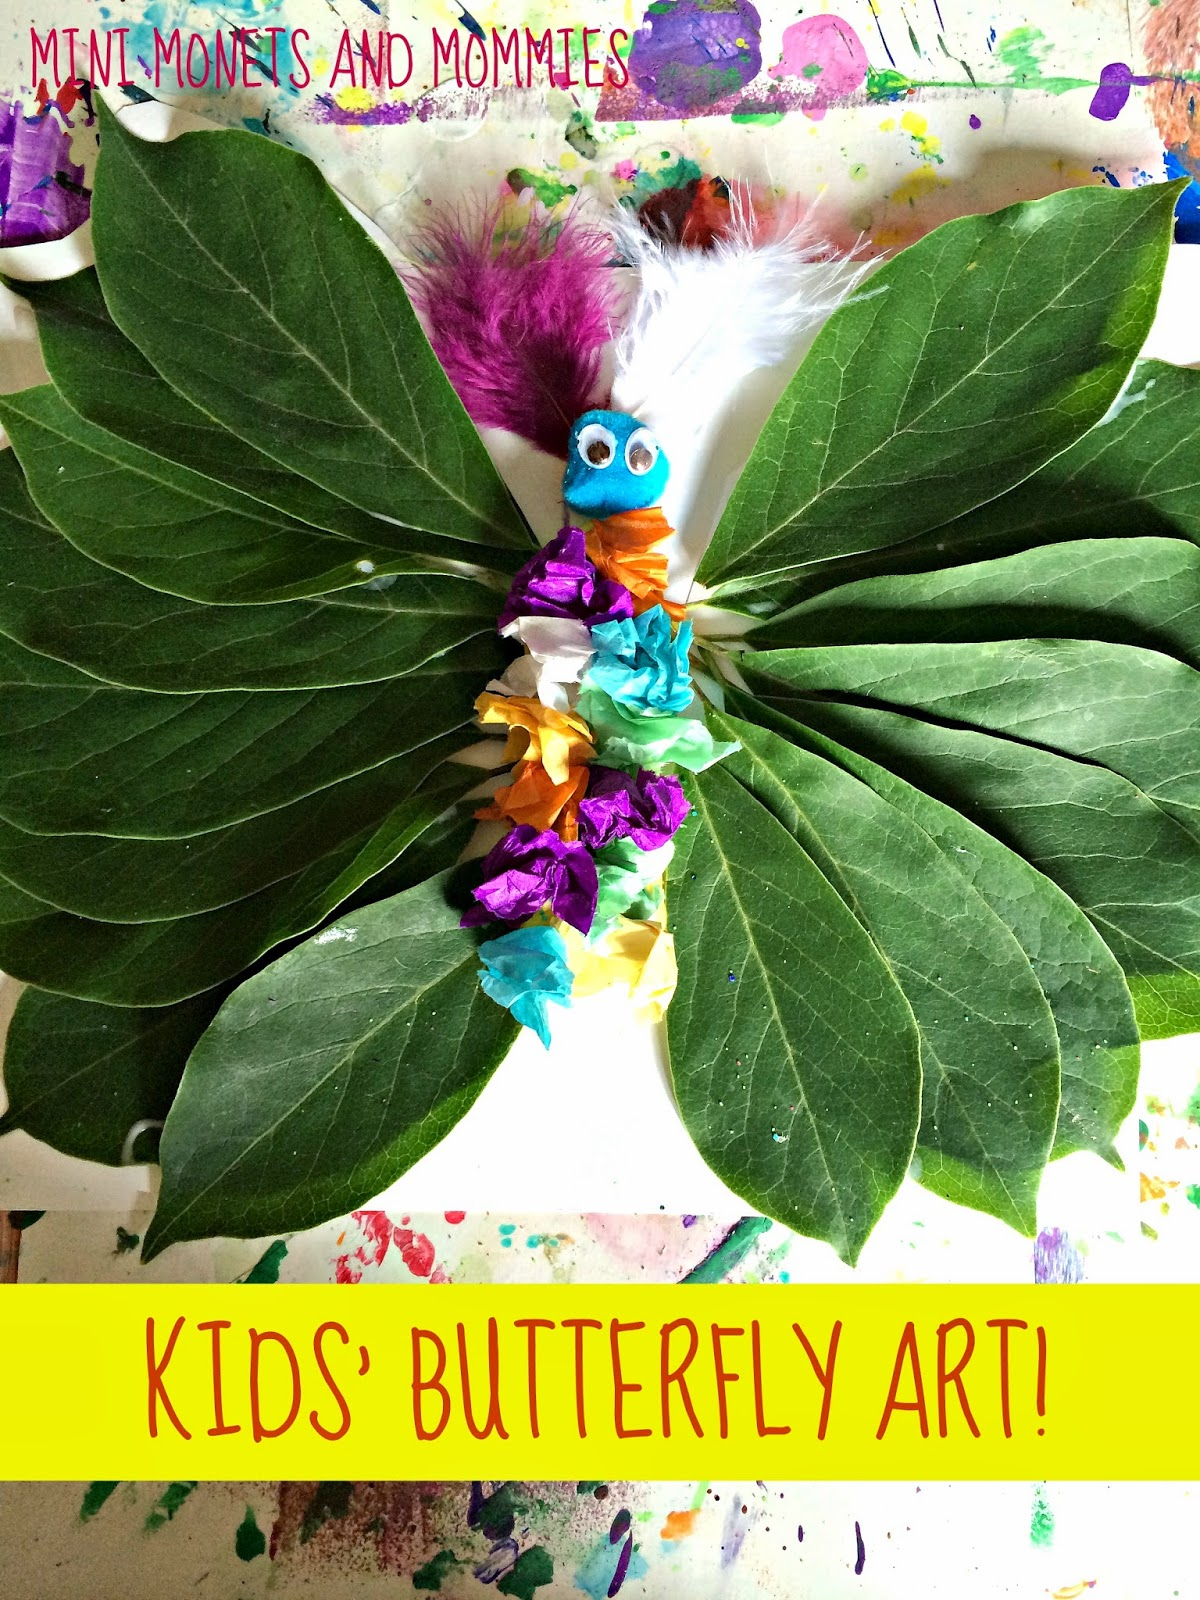 Mini Monets And Mommies Kids Butterfly Plant Art Activity